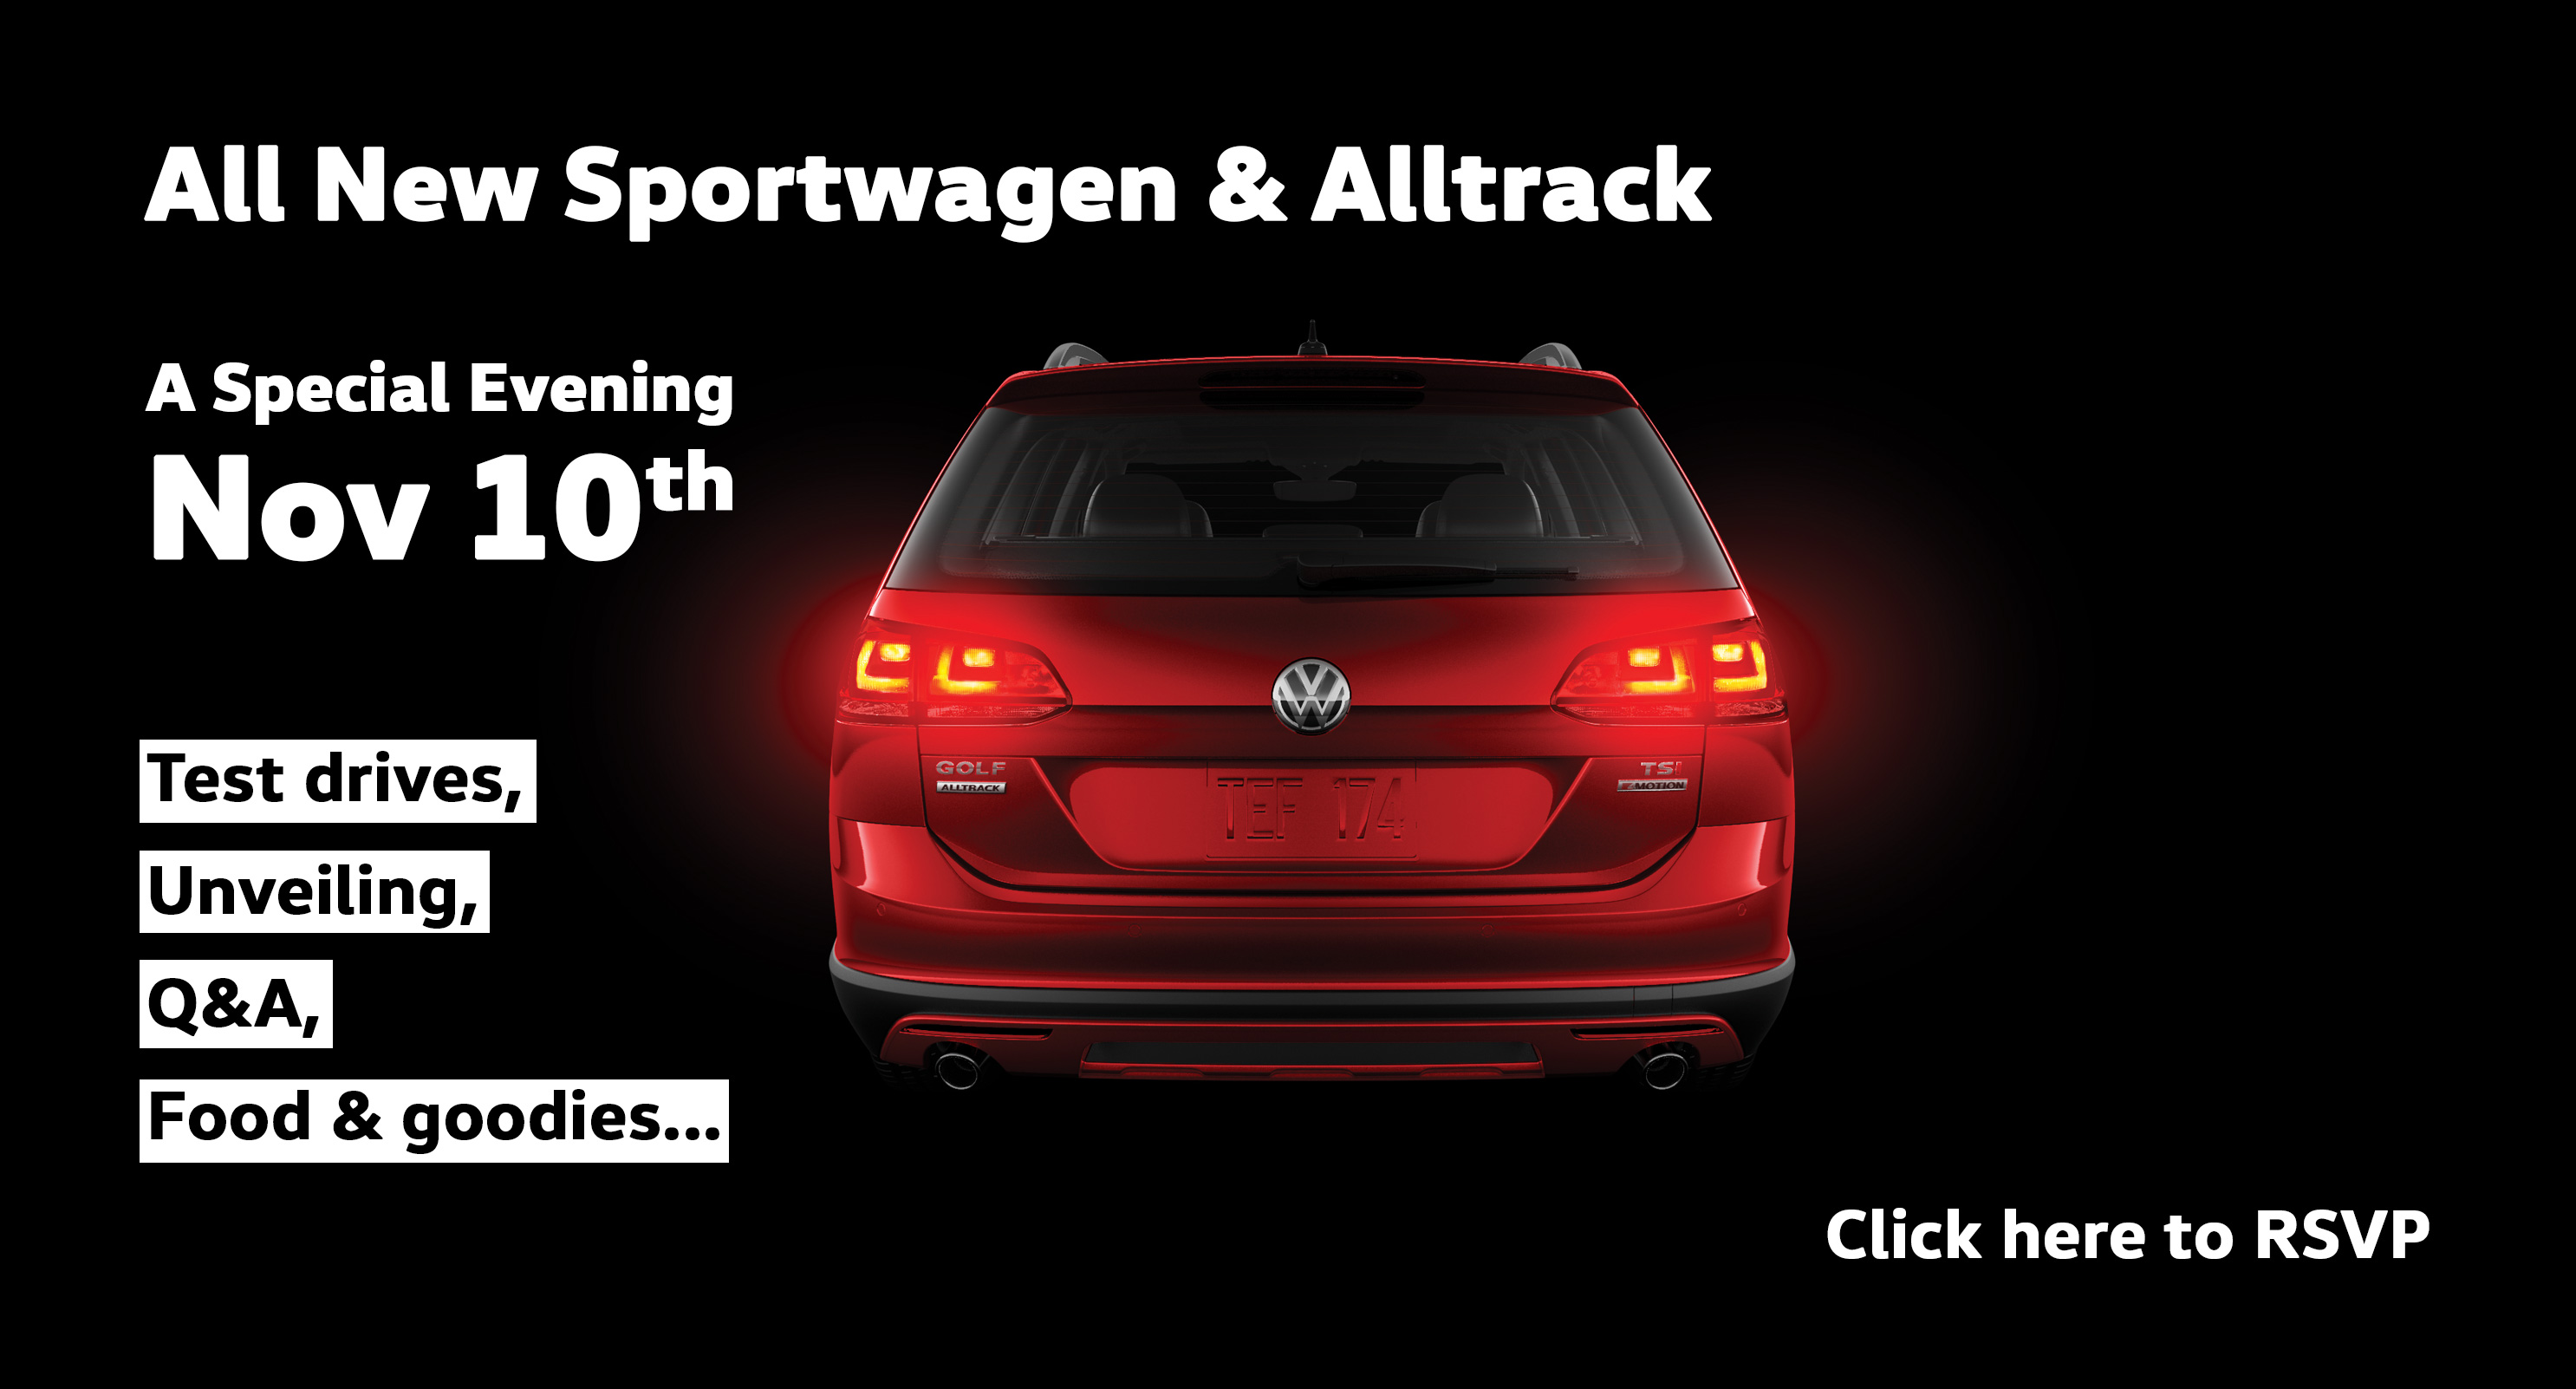 VW Alltrack and Sportwagen Special Evening at Clarkdale Volkswagen in Vancouver